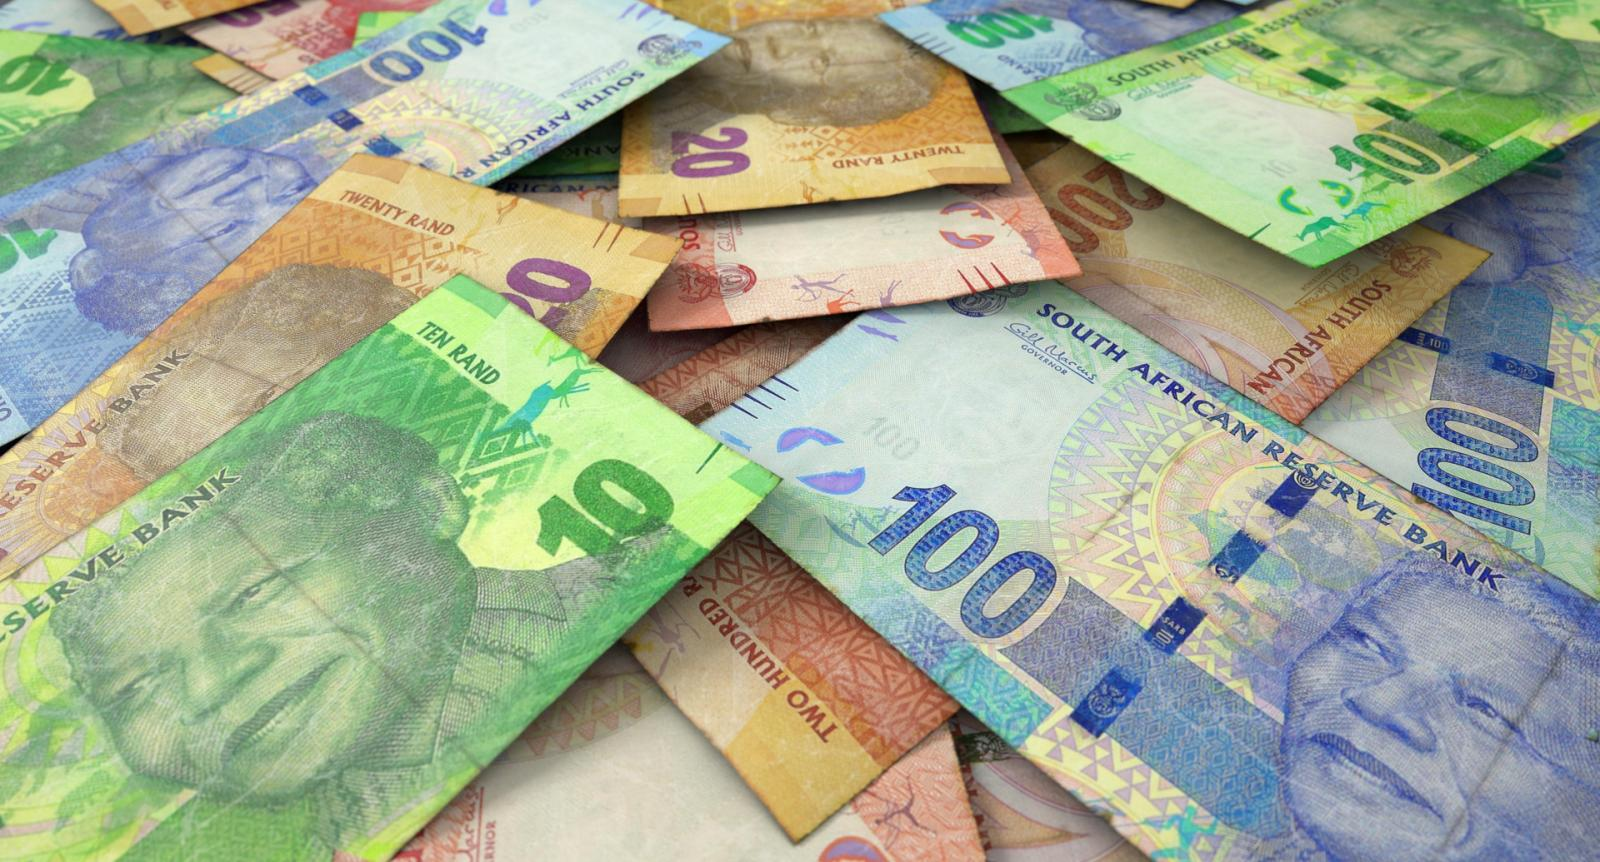 South African Investment Firm Looted Pension Fund With Insider Information